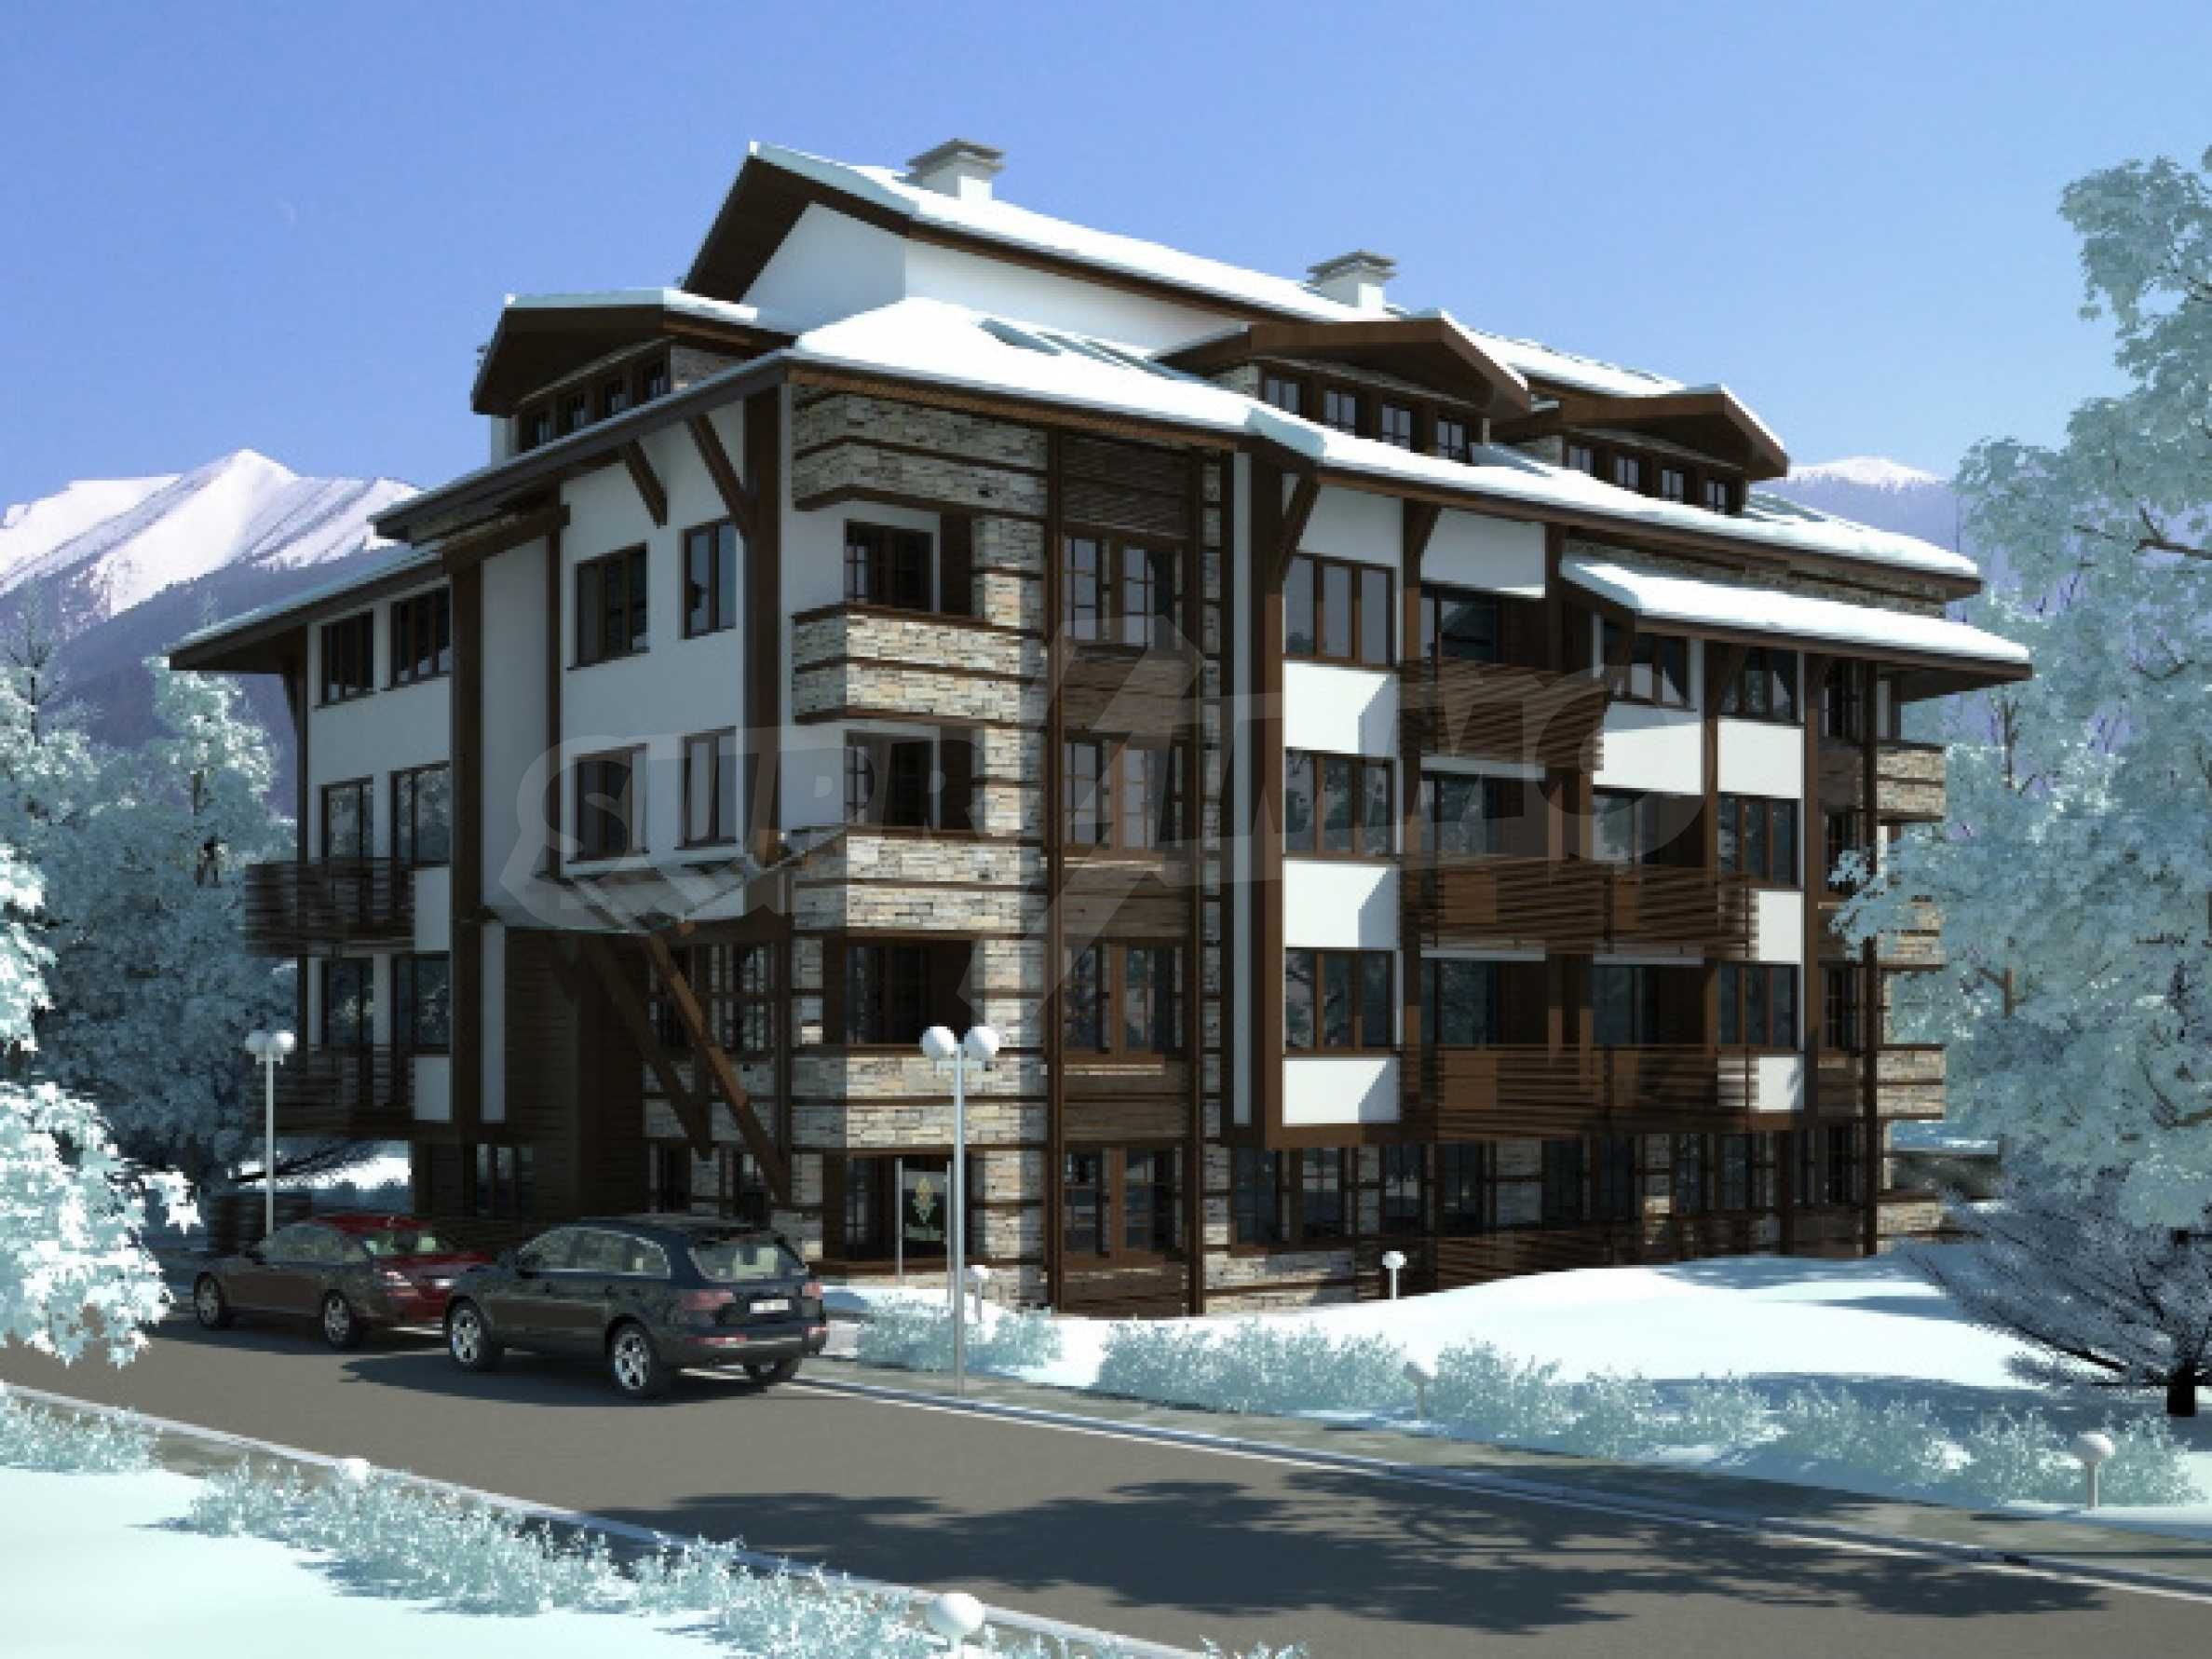 Chateau Blanc: Probably the best investment opportunity in Bansko...